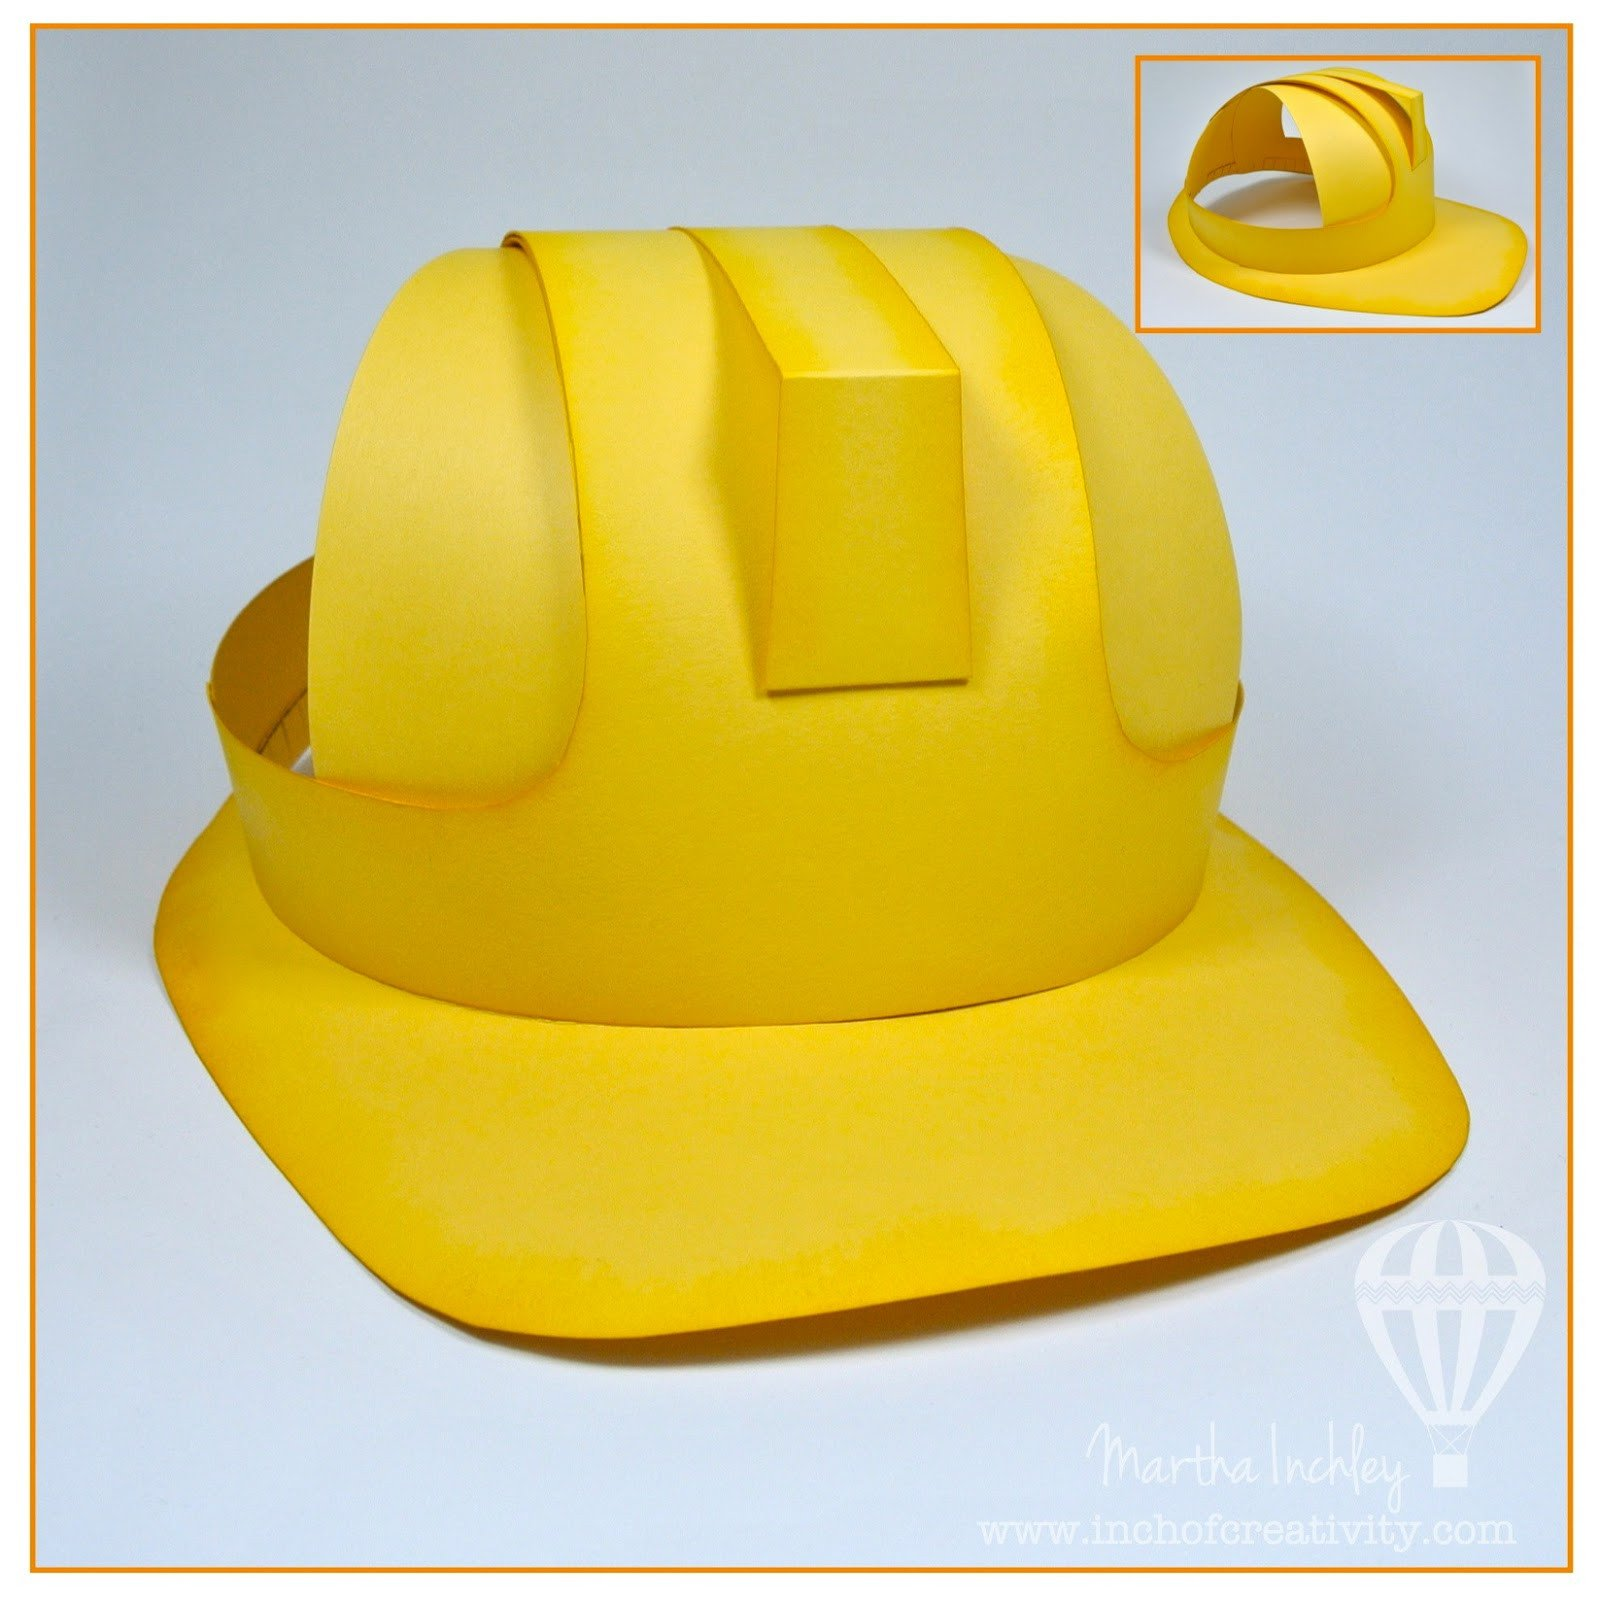 Construction Worker Hat Craft Inch Of Creativity the Construction Crew